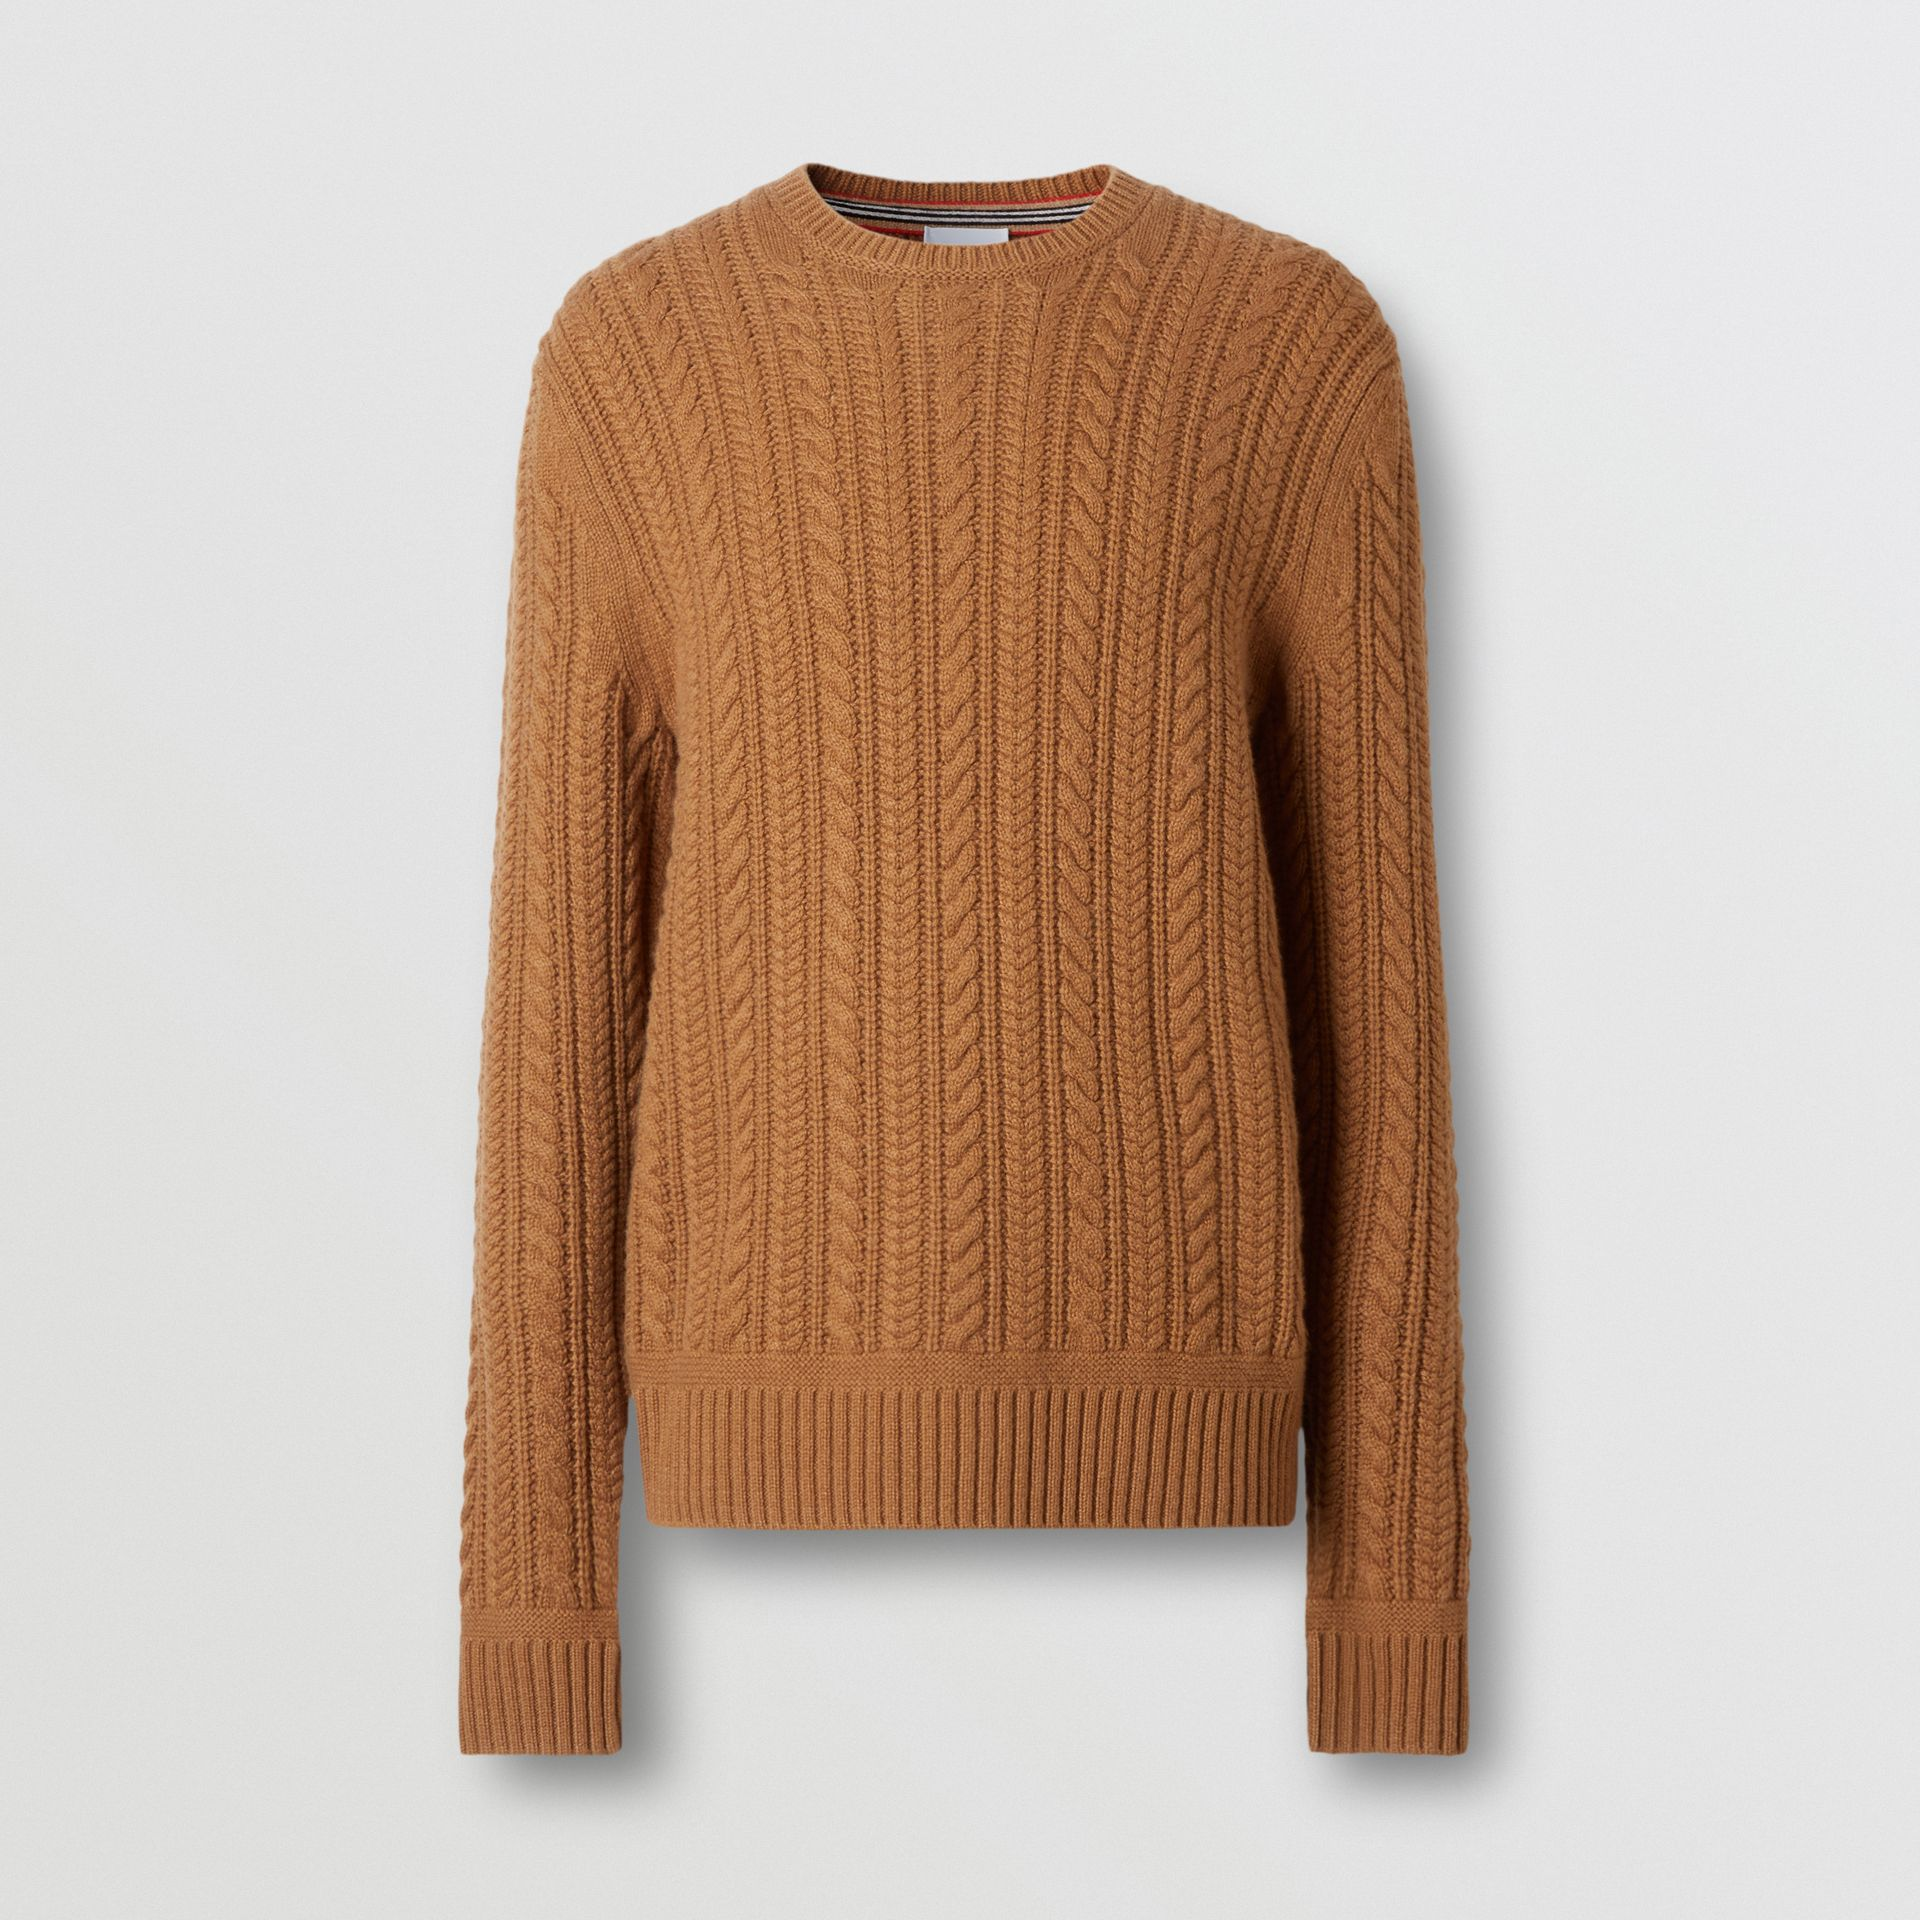 Cable Knit Cashmere Sweater in Maple - Men | Burberry - gallery image 3